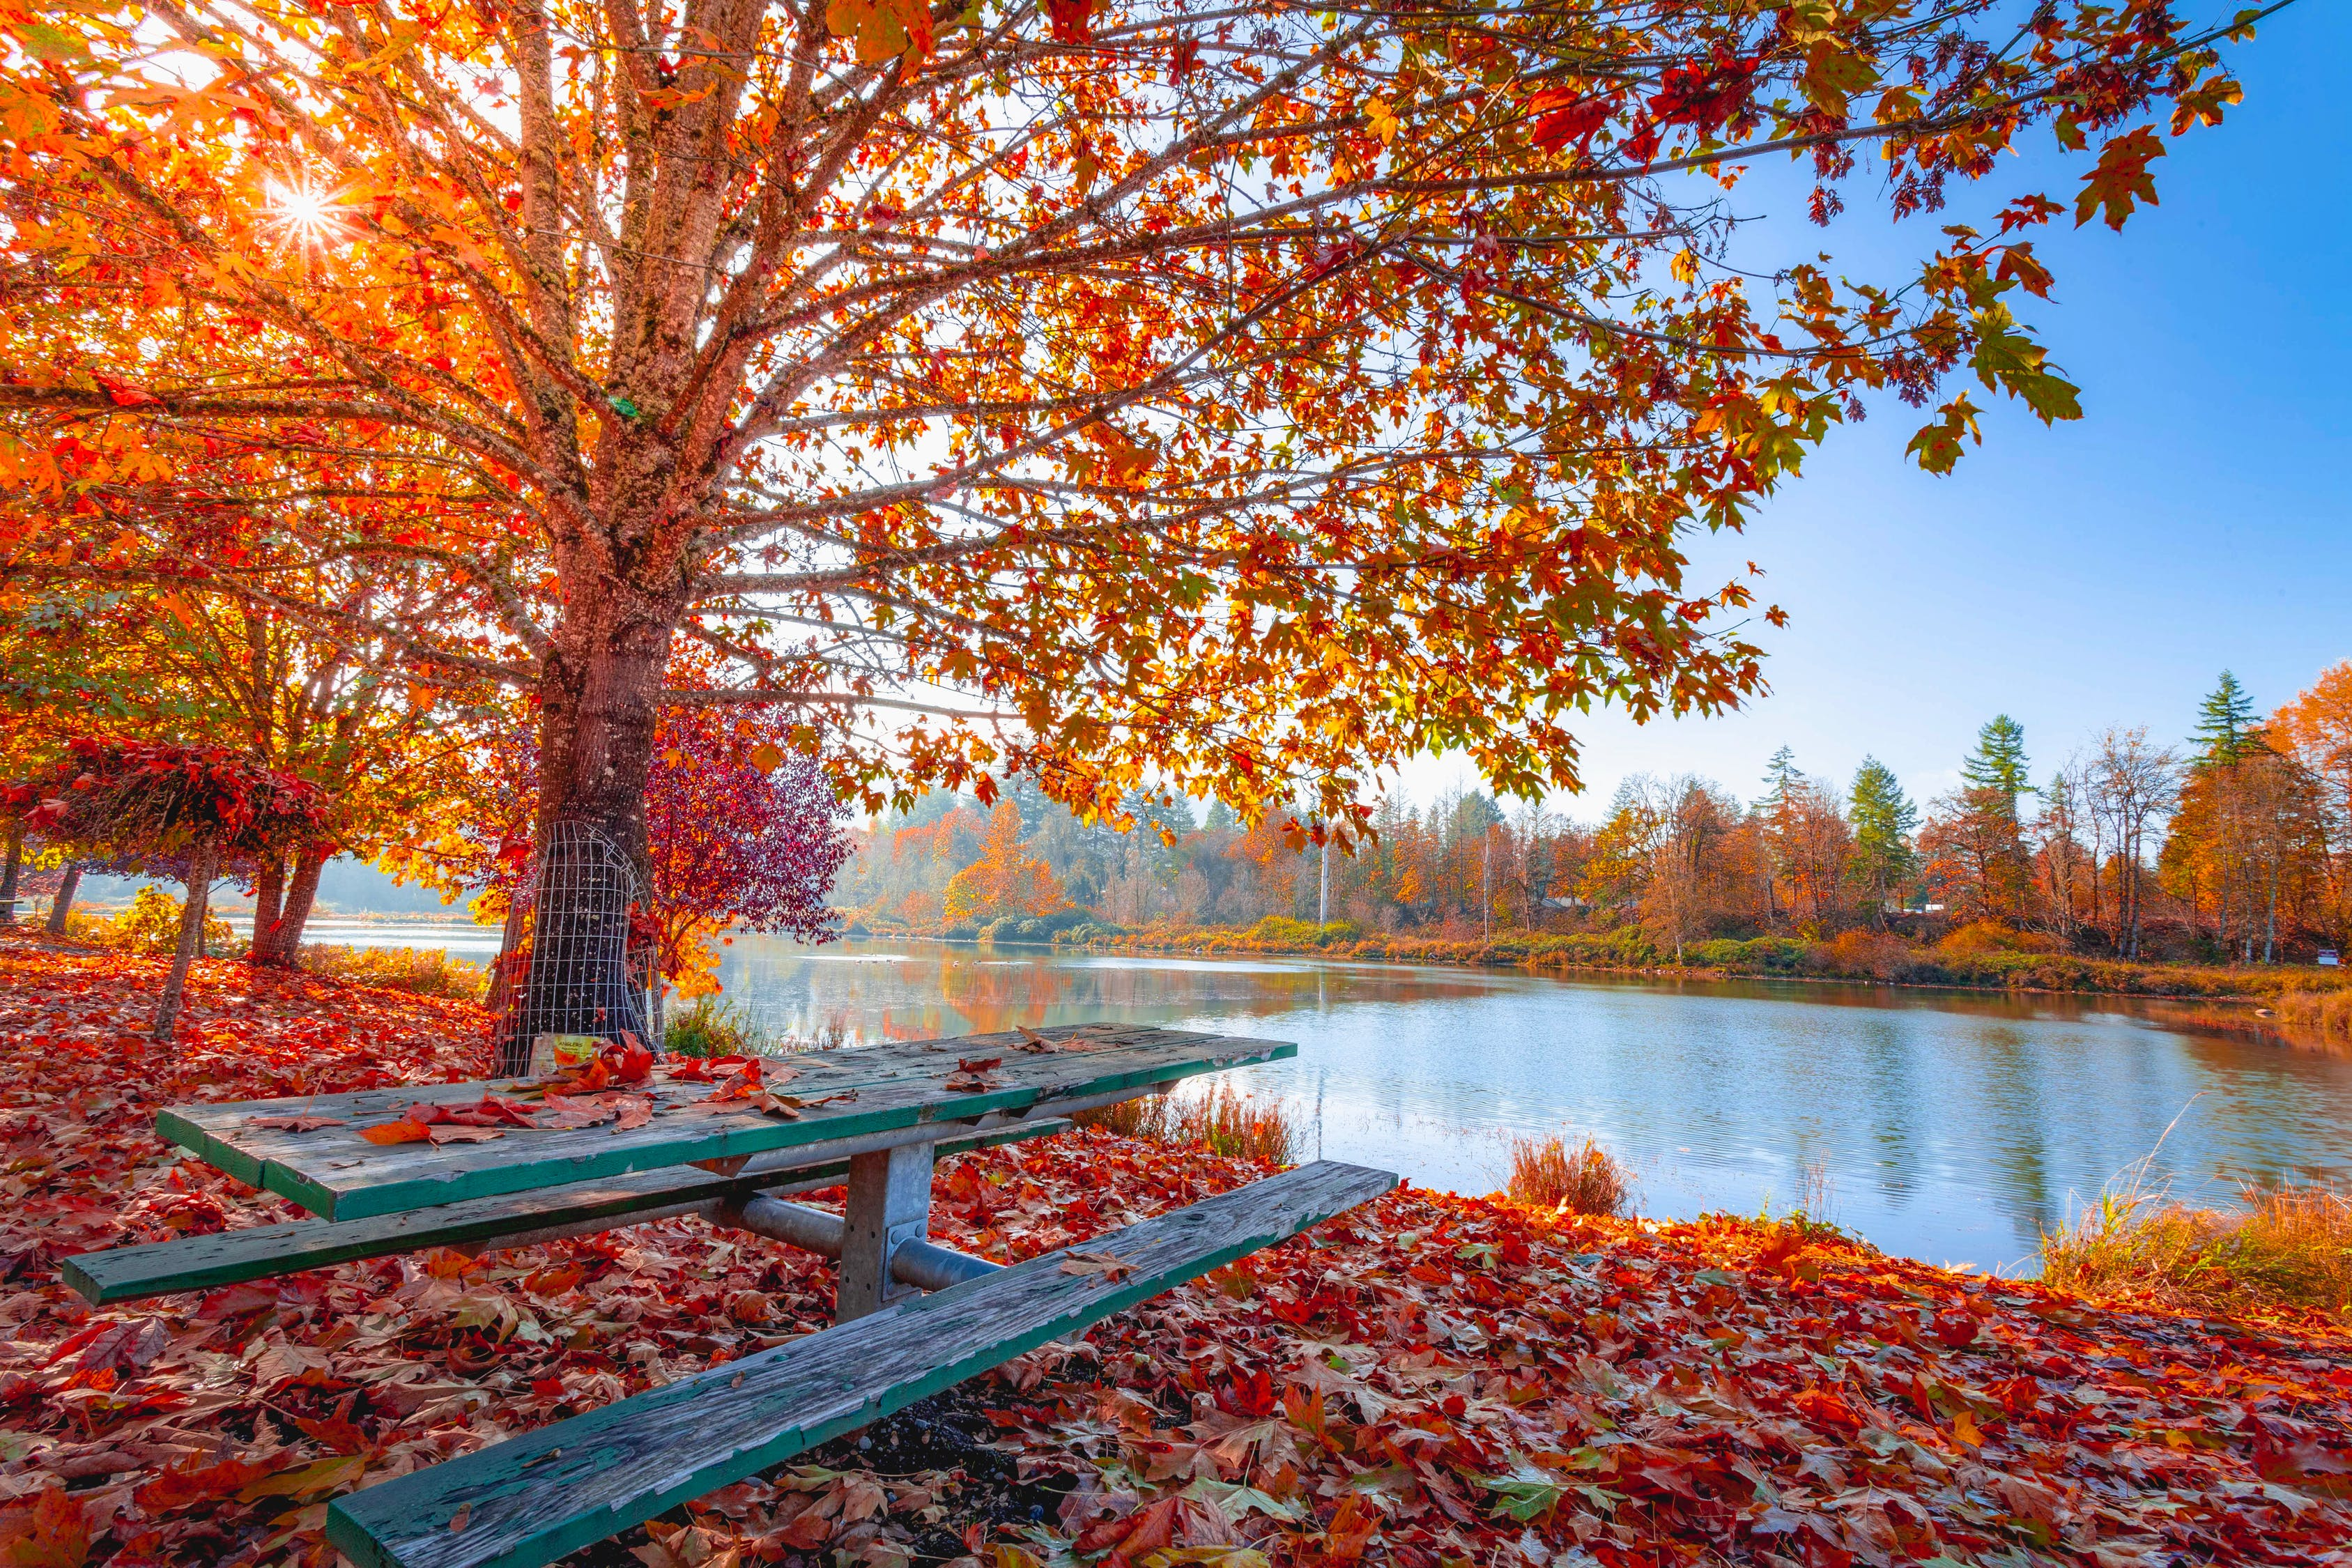 Colorful, red leaves on tree and covering the ground near a lake with a wooden picnic table.